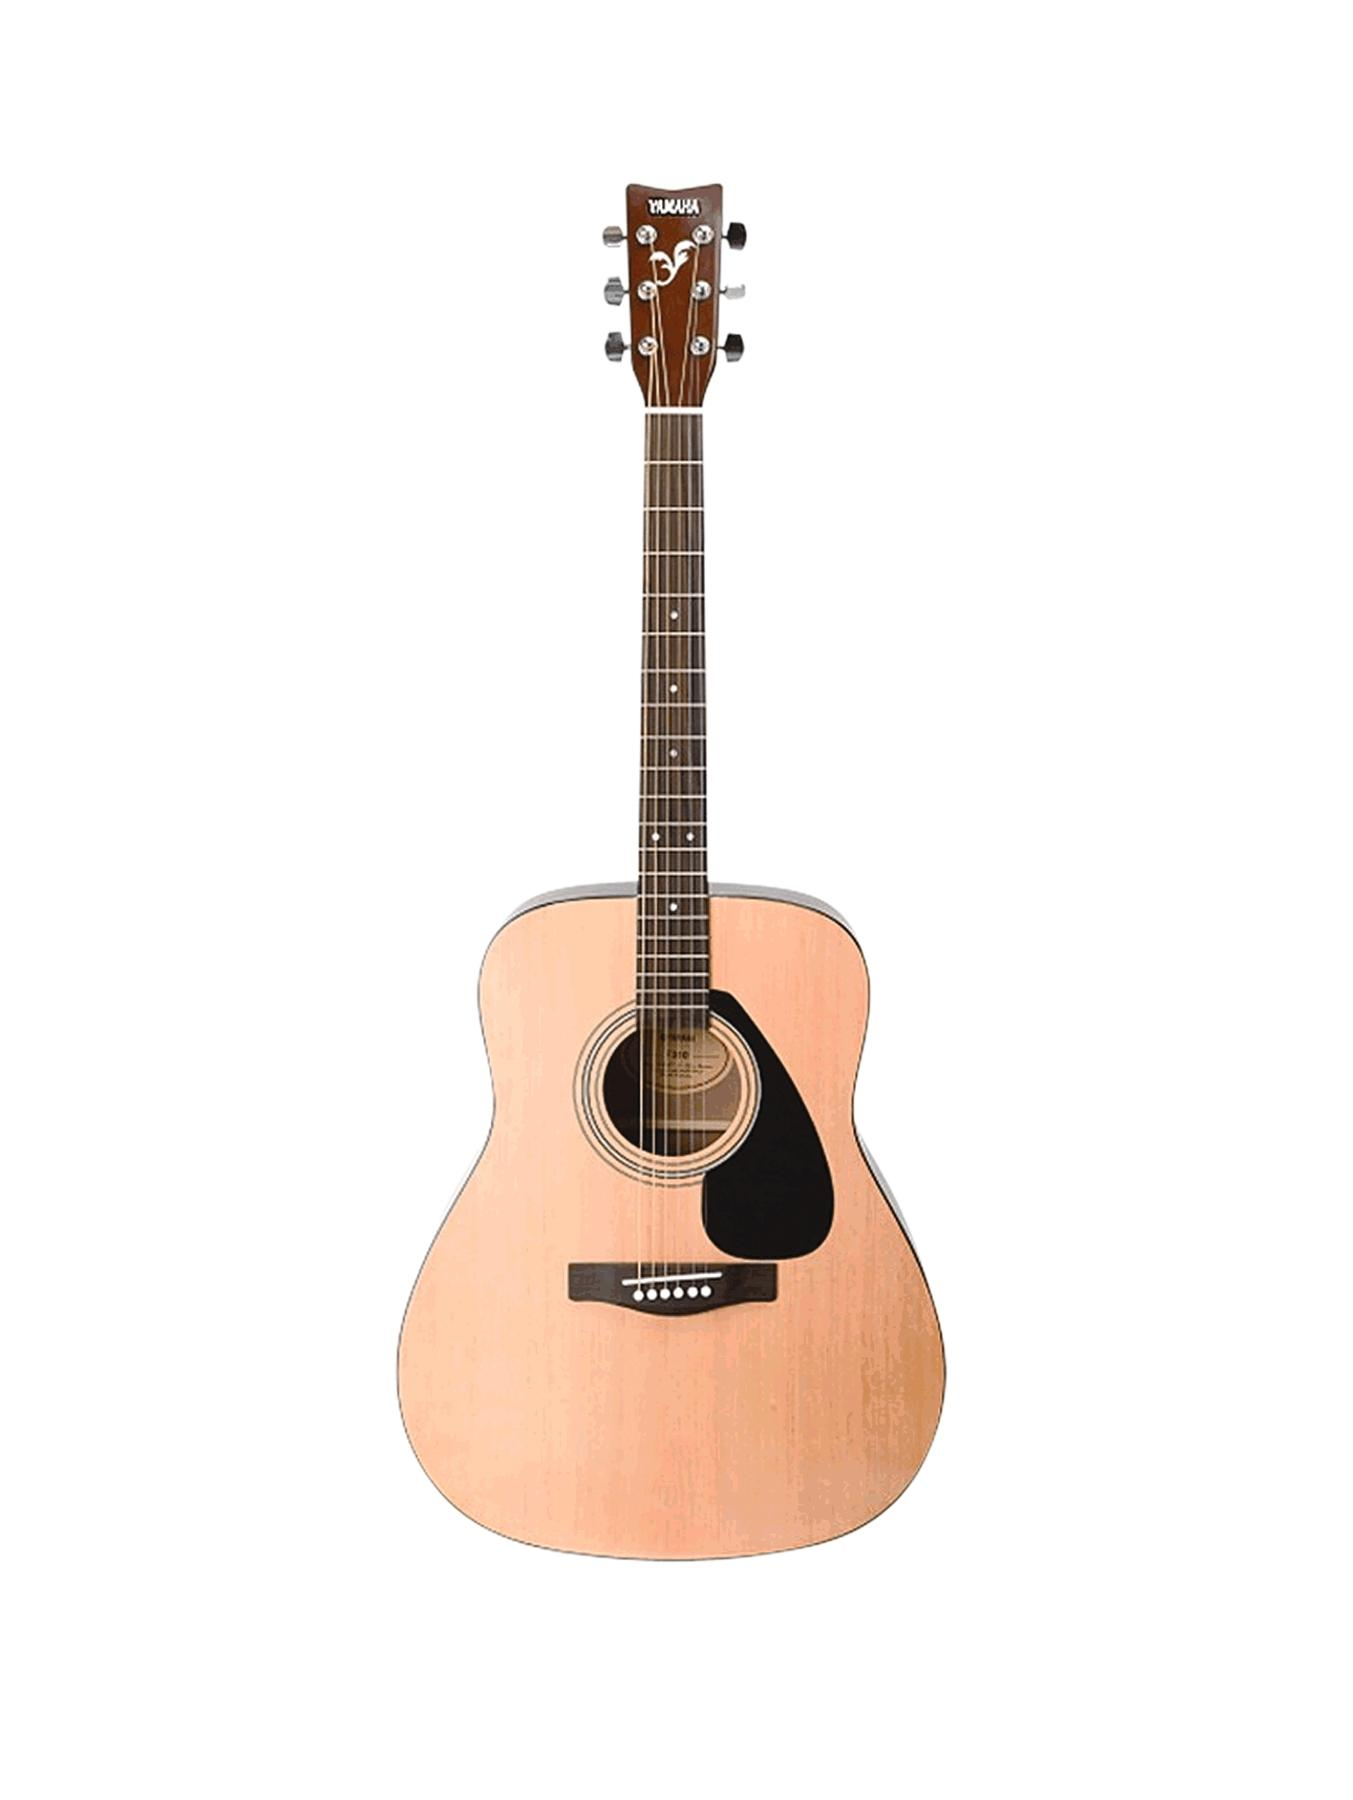 F310 Acoustic Guitar Starter Pack Musical Instrument